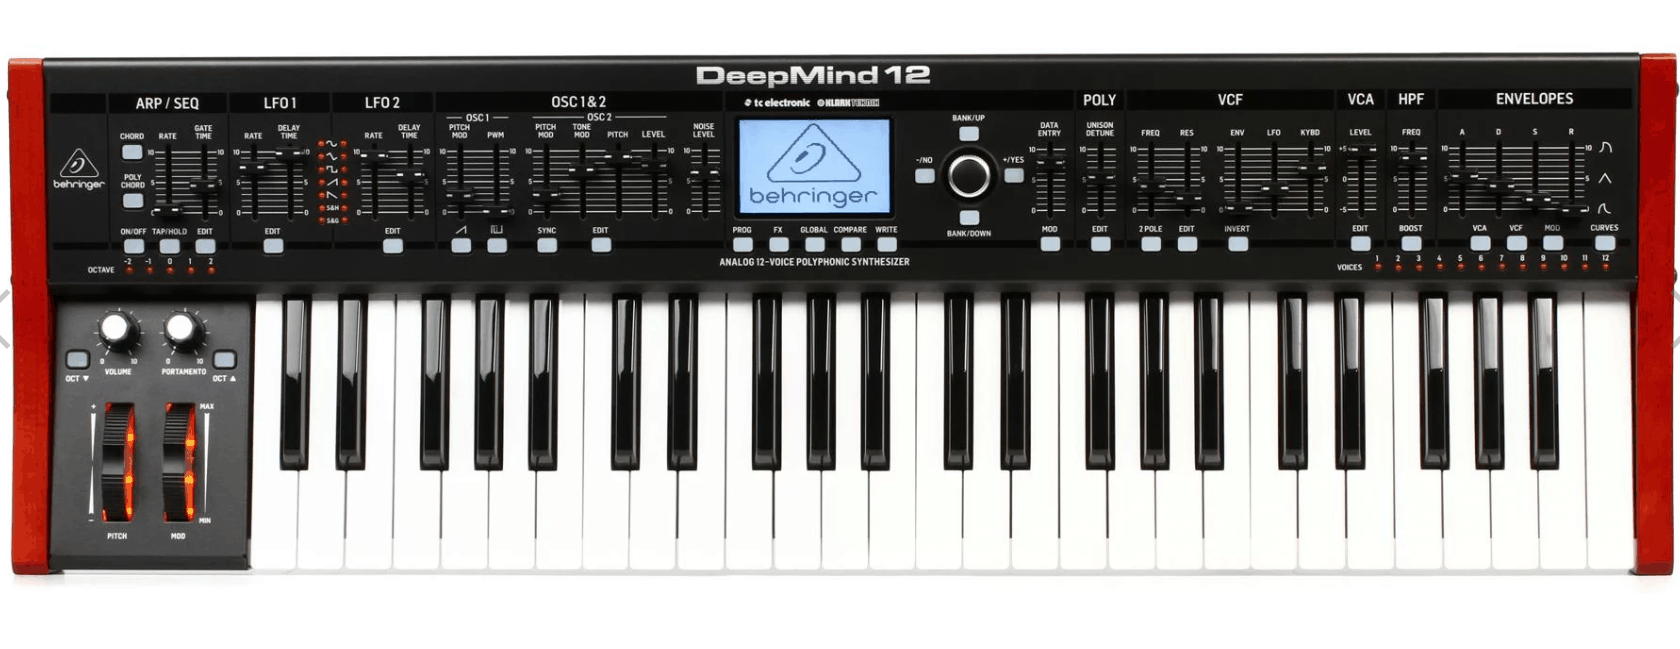 Behringer Deepmind 12 49 Key 12 Voice Analog Synthesizer